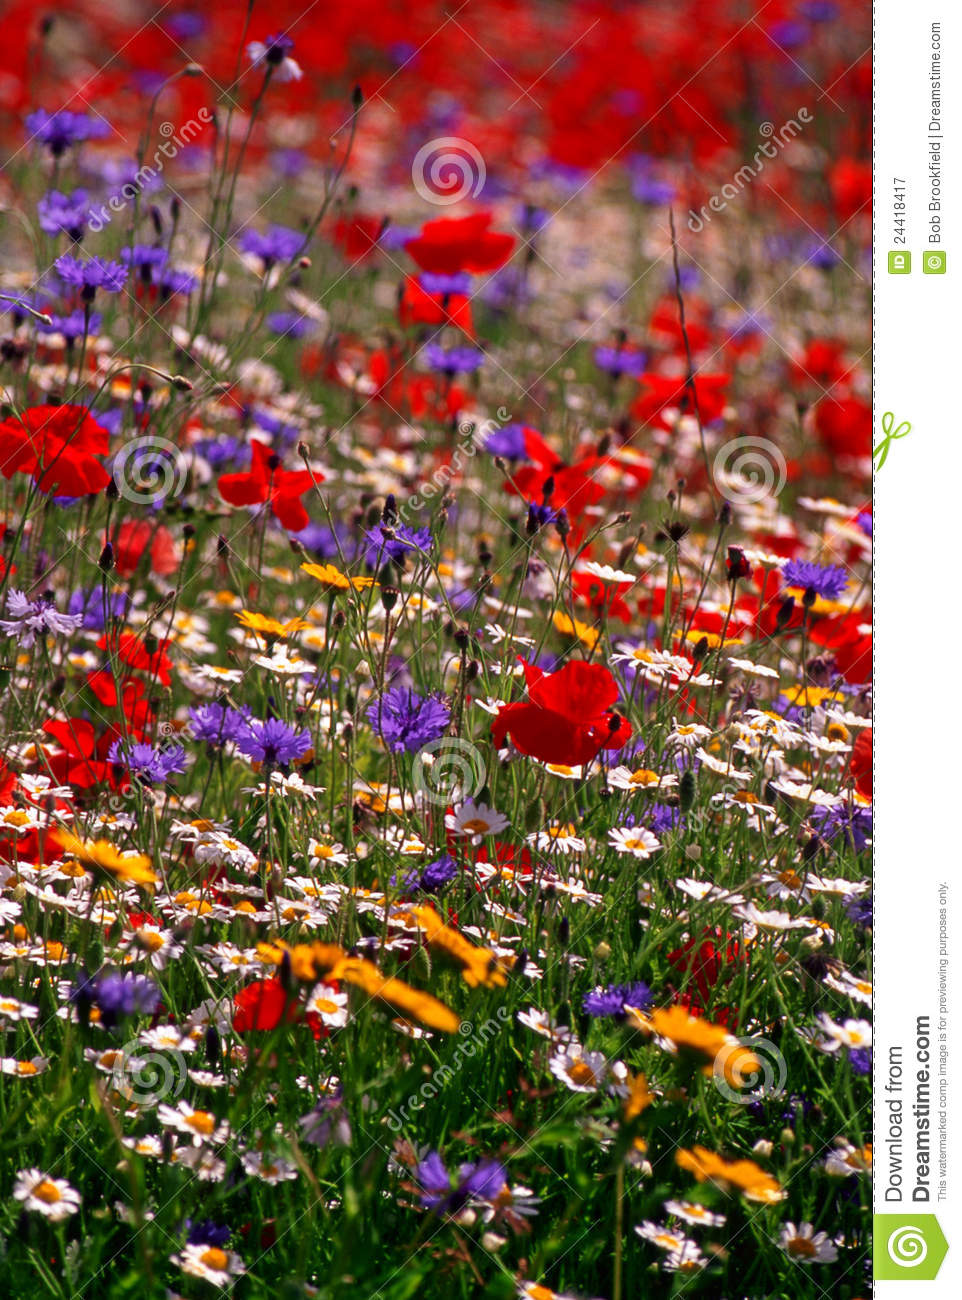 Prato Colourful del wildflower, Inghilterra